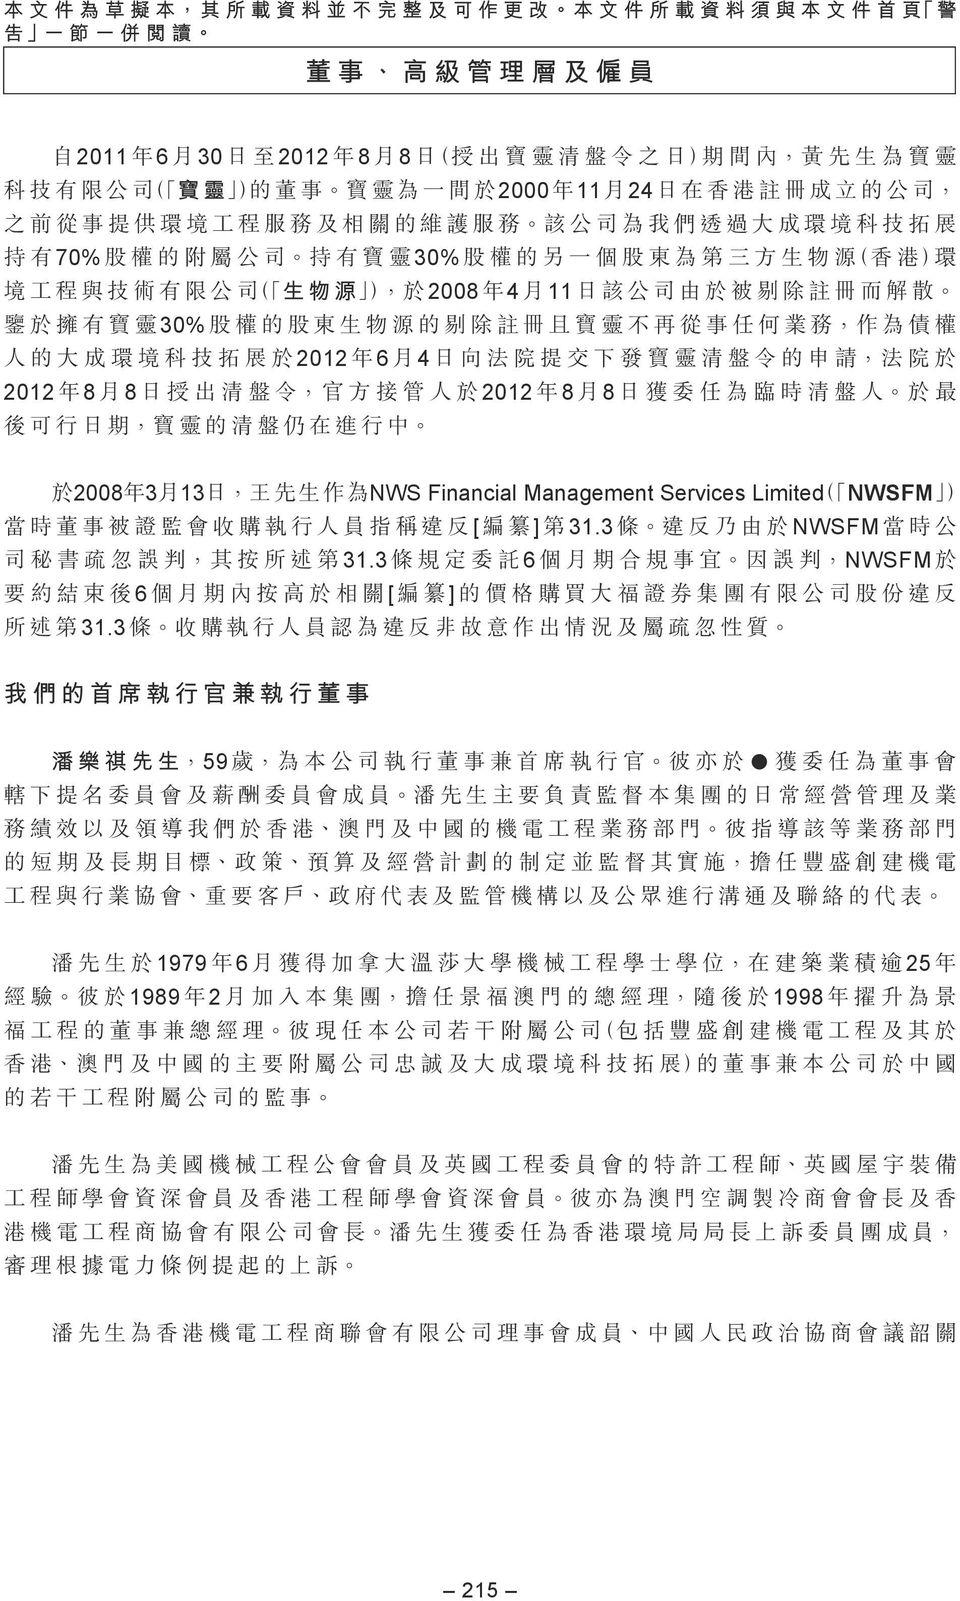 Financial Management Services Limited NWSFM [ ] 31.